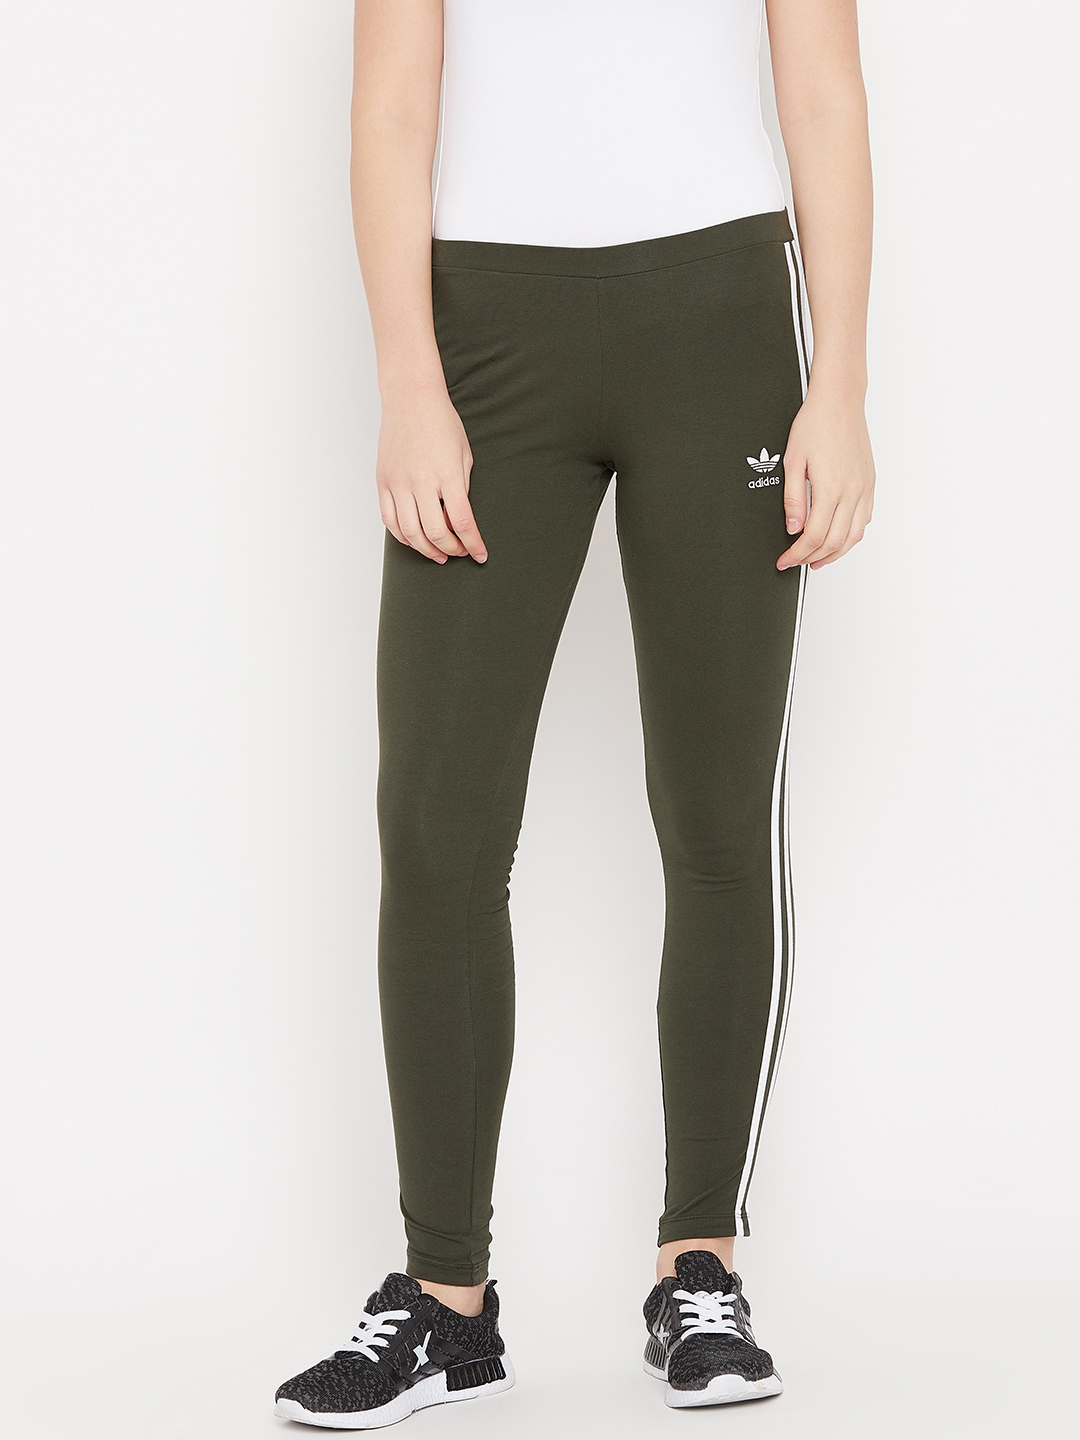 info for d258b ade7f ADIDAS Originals Women Olive Green 3 Stripes Solid Tights